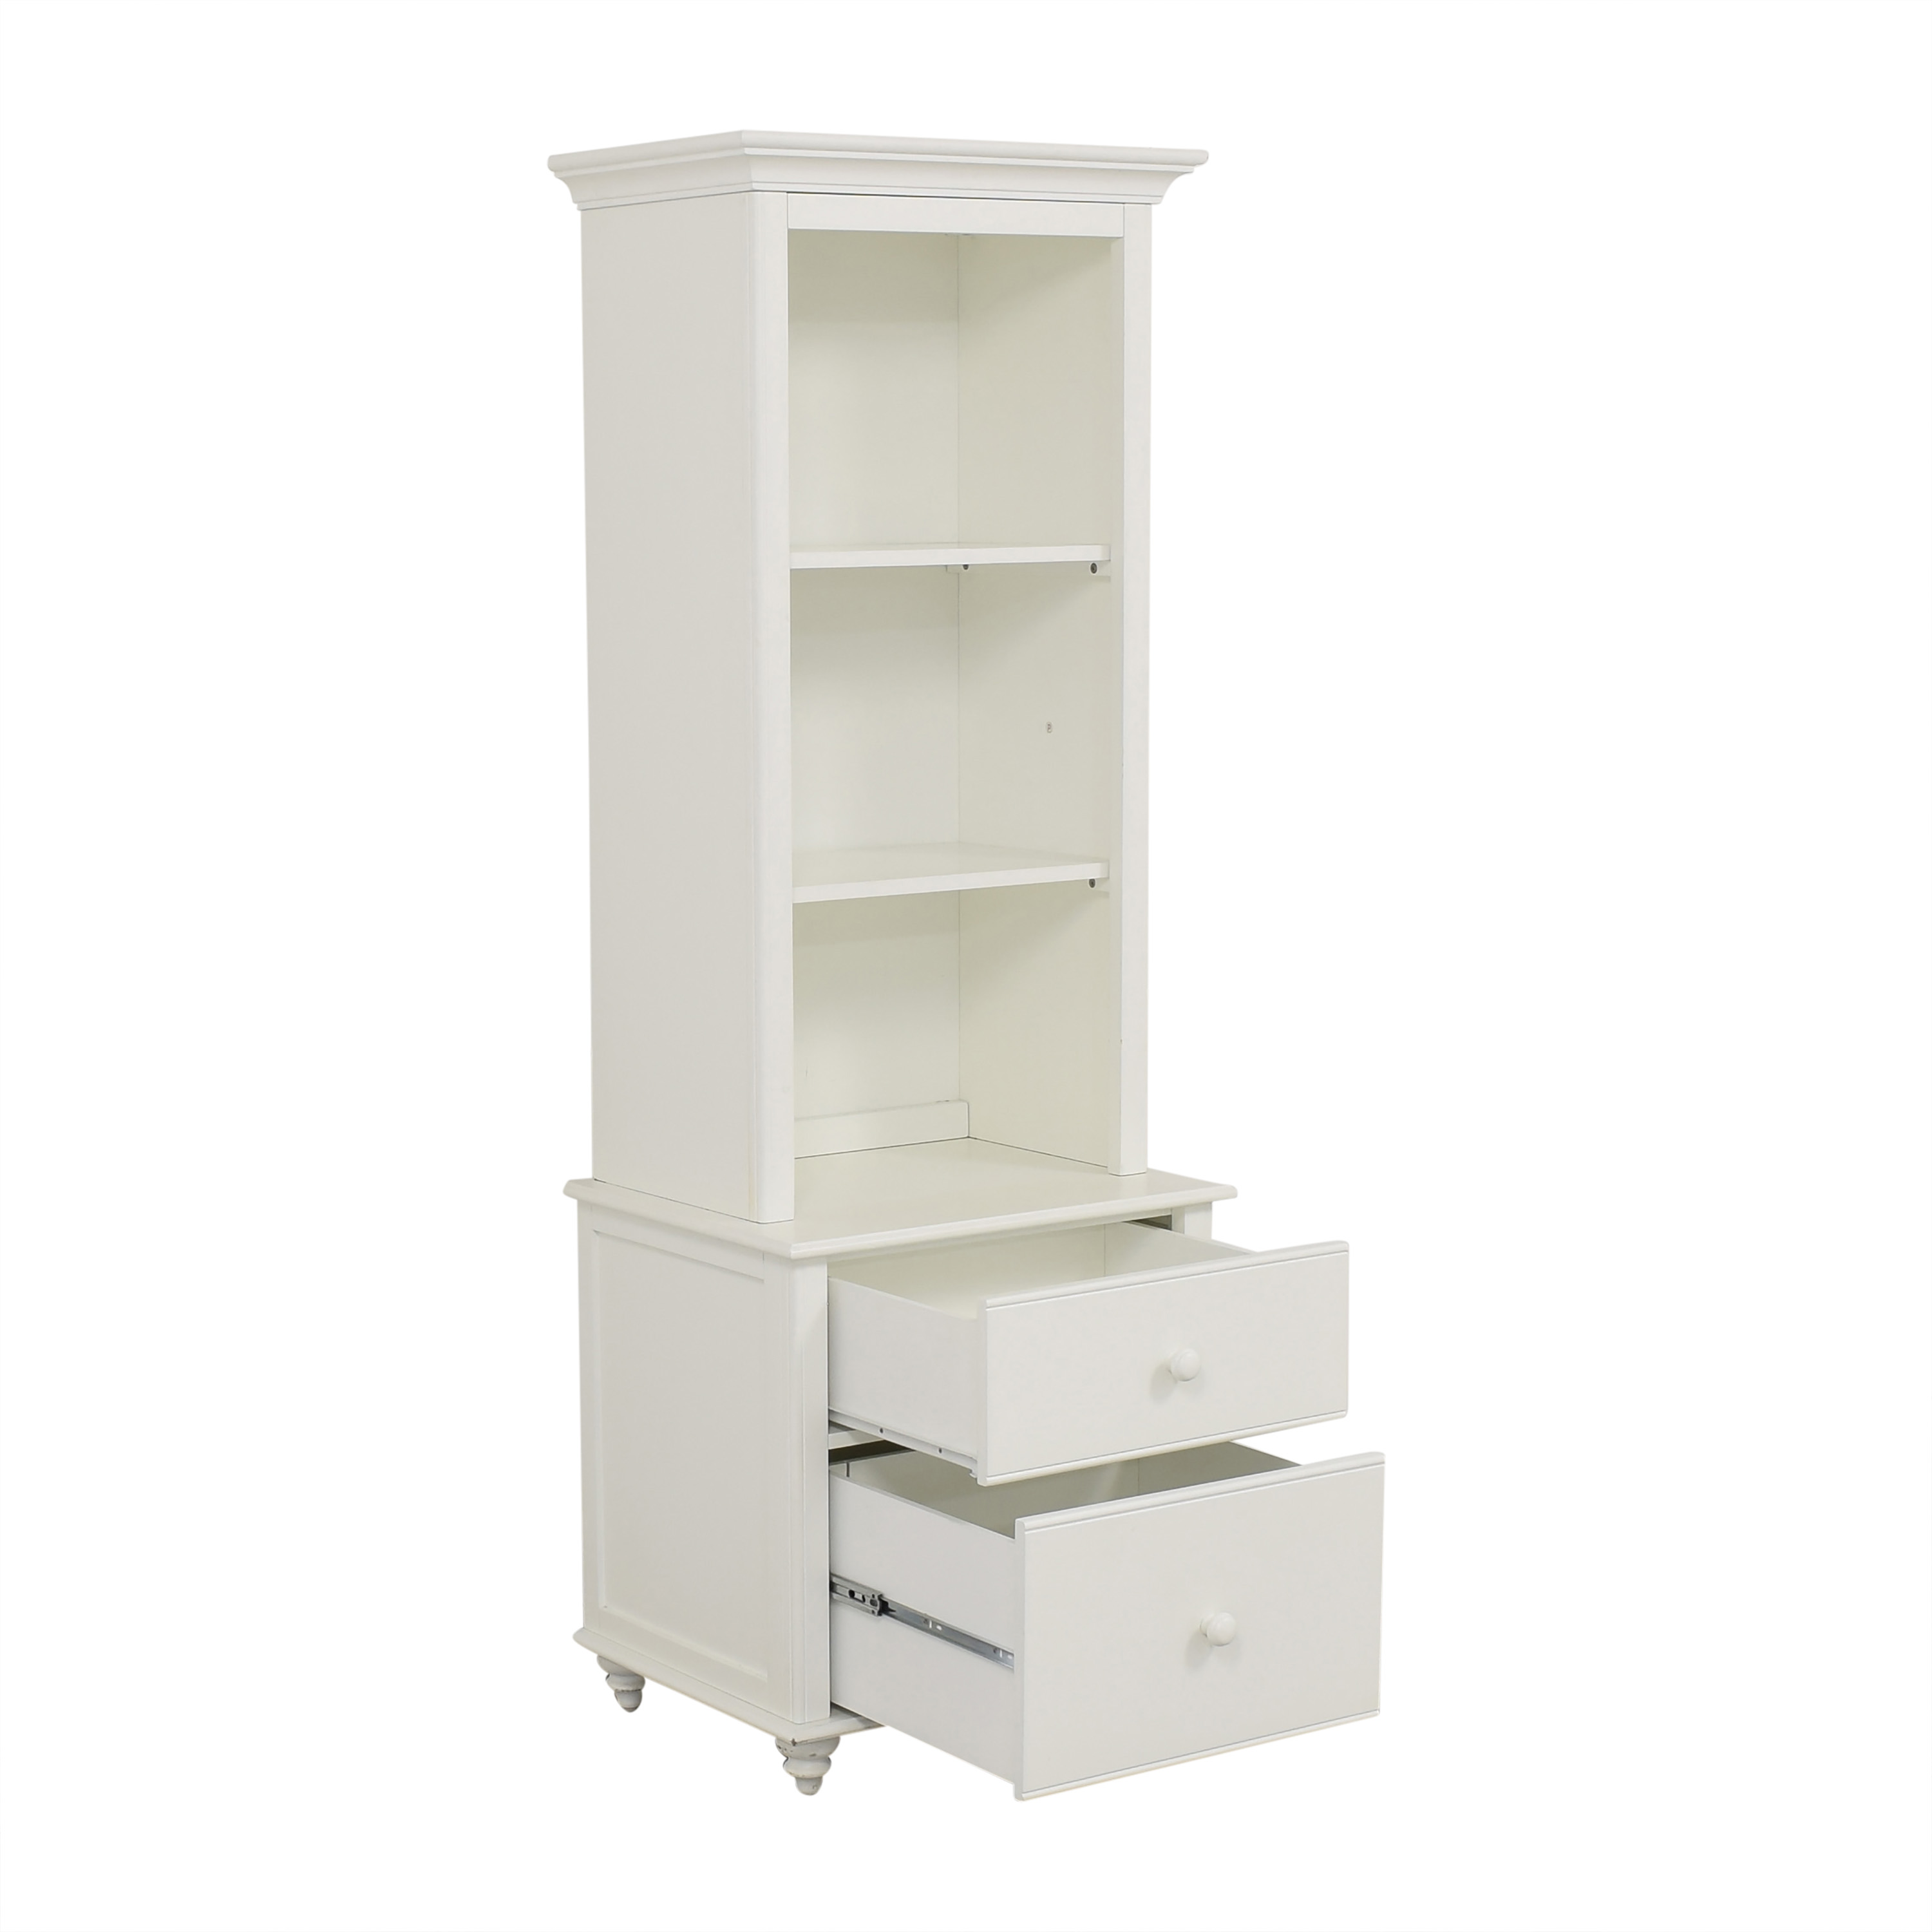 Land of Nod Land of Nod Library Chest Hutch dimensions